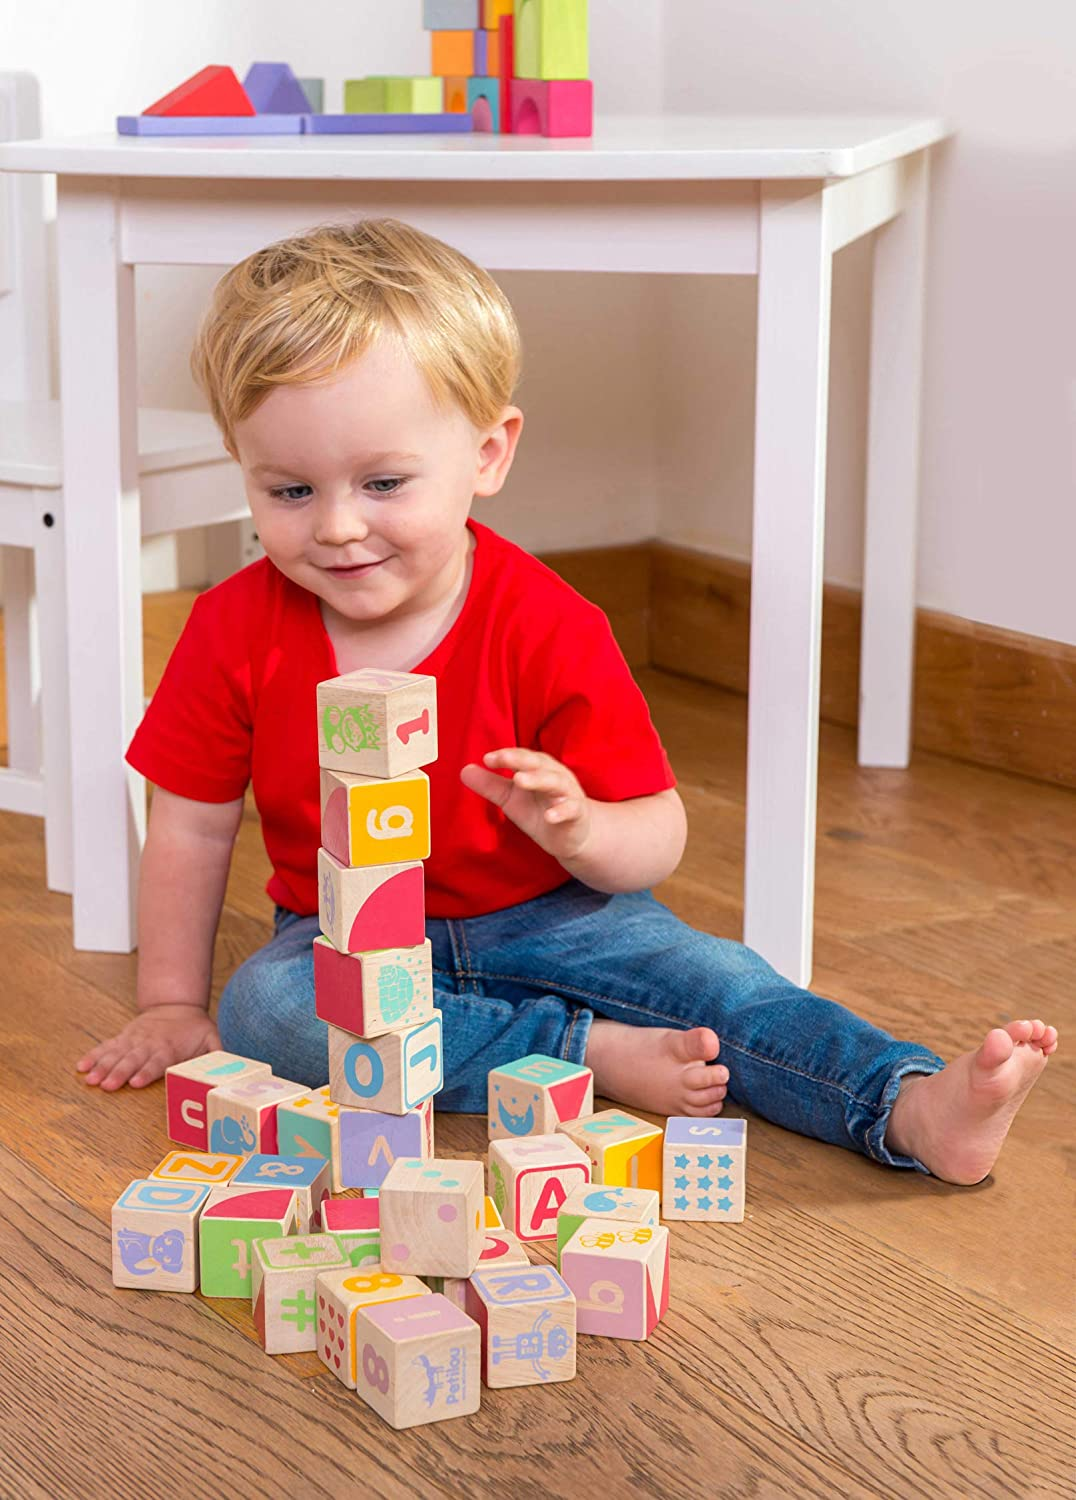 abc and more wooden blocks